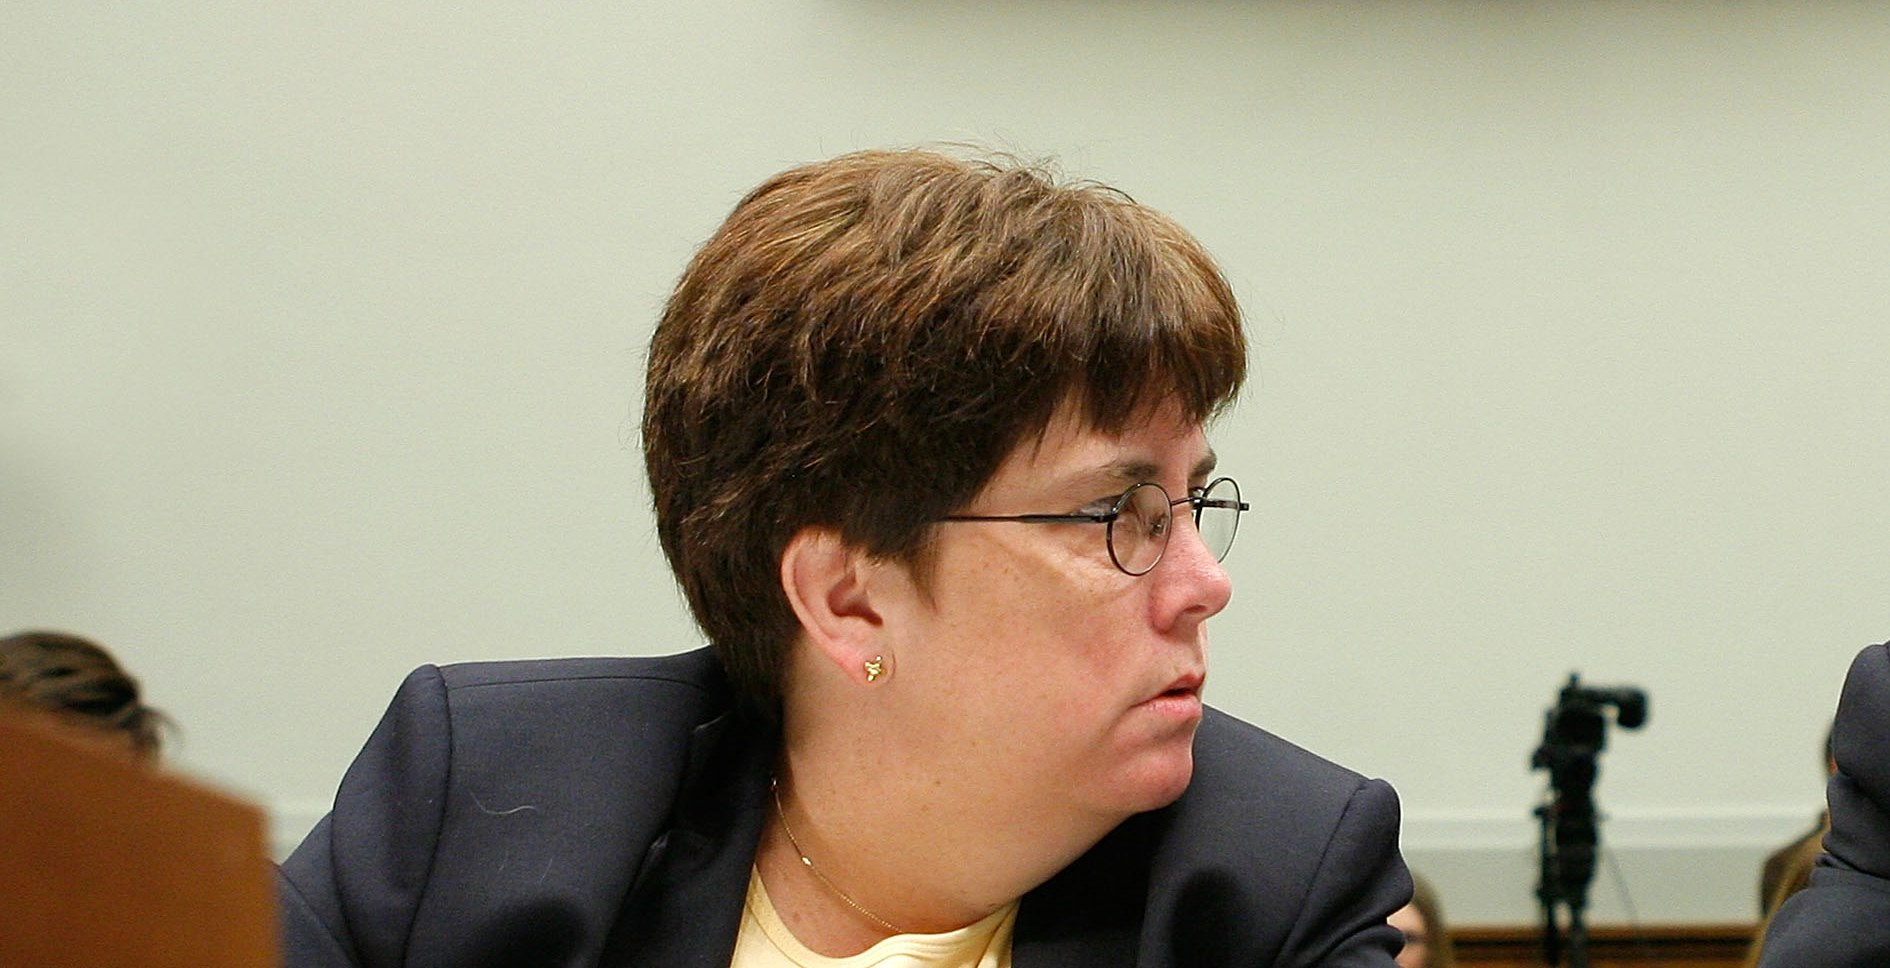 U.S. District Judge Valerie Caproni, pictured in 2007, will preside over the Buffalo Billion case. (Getty Images)